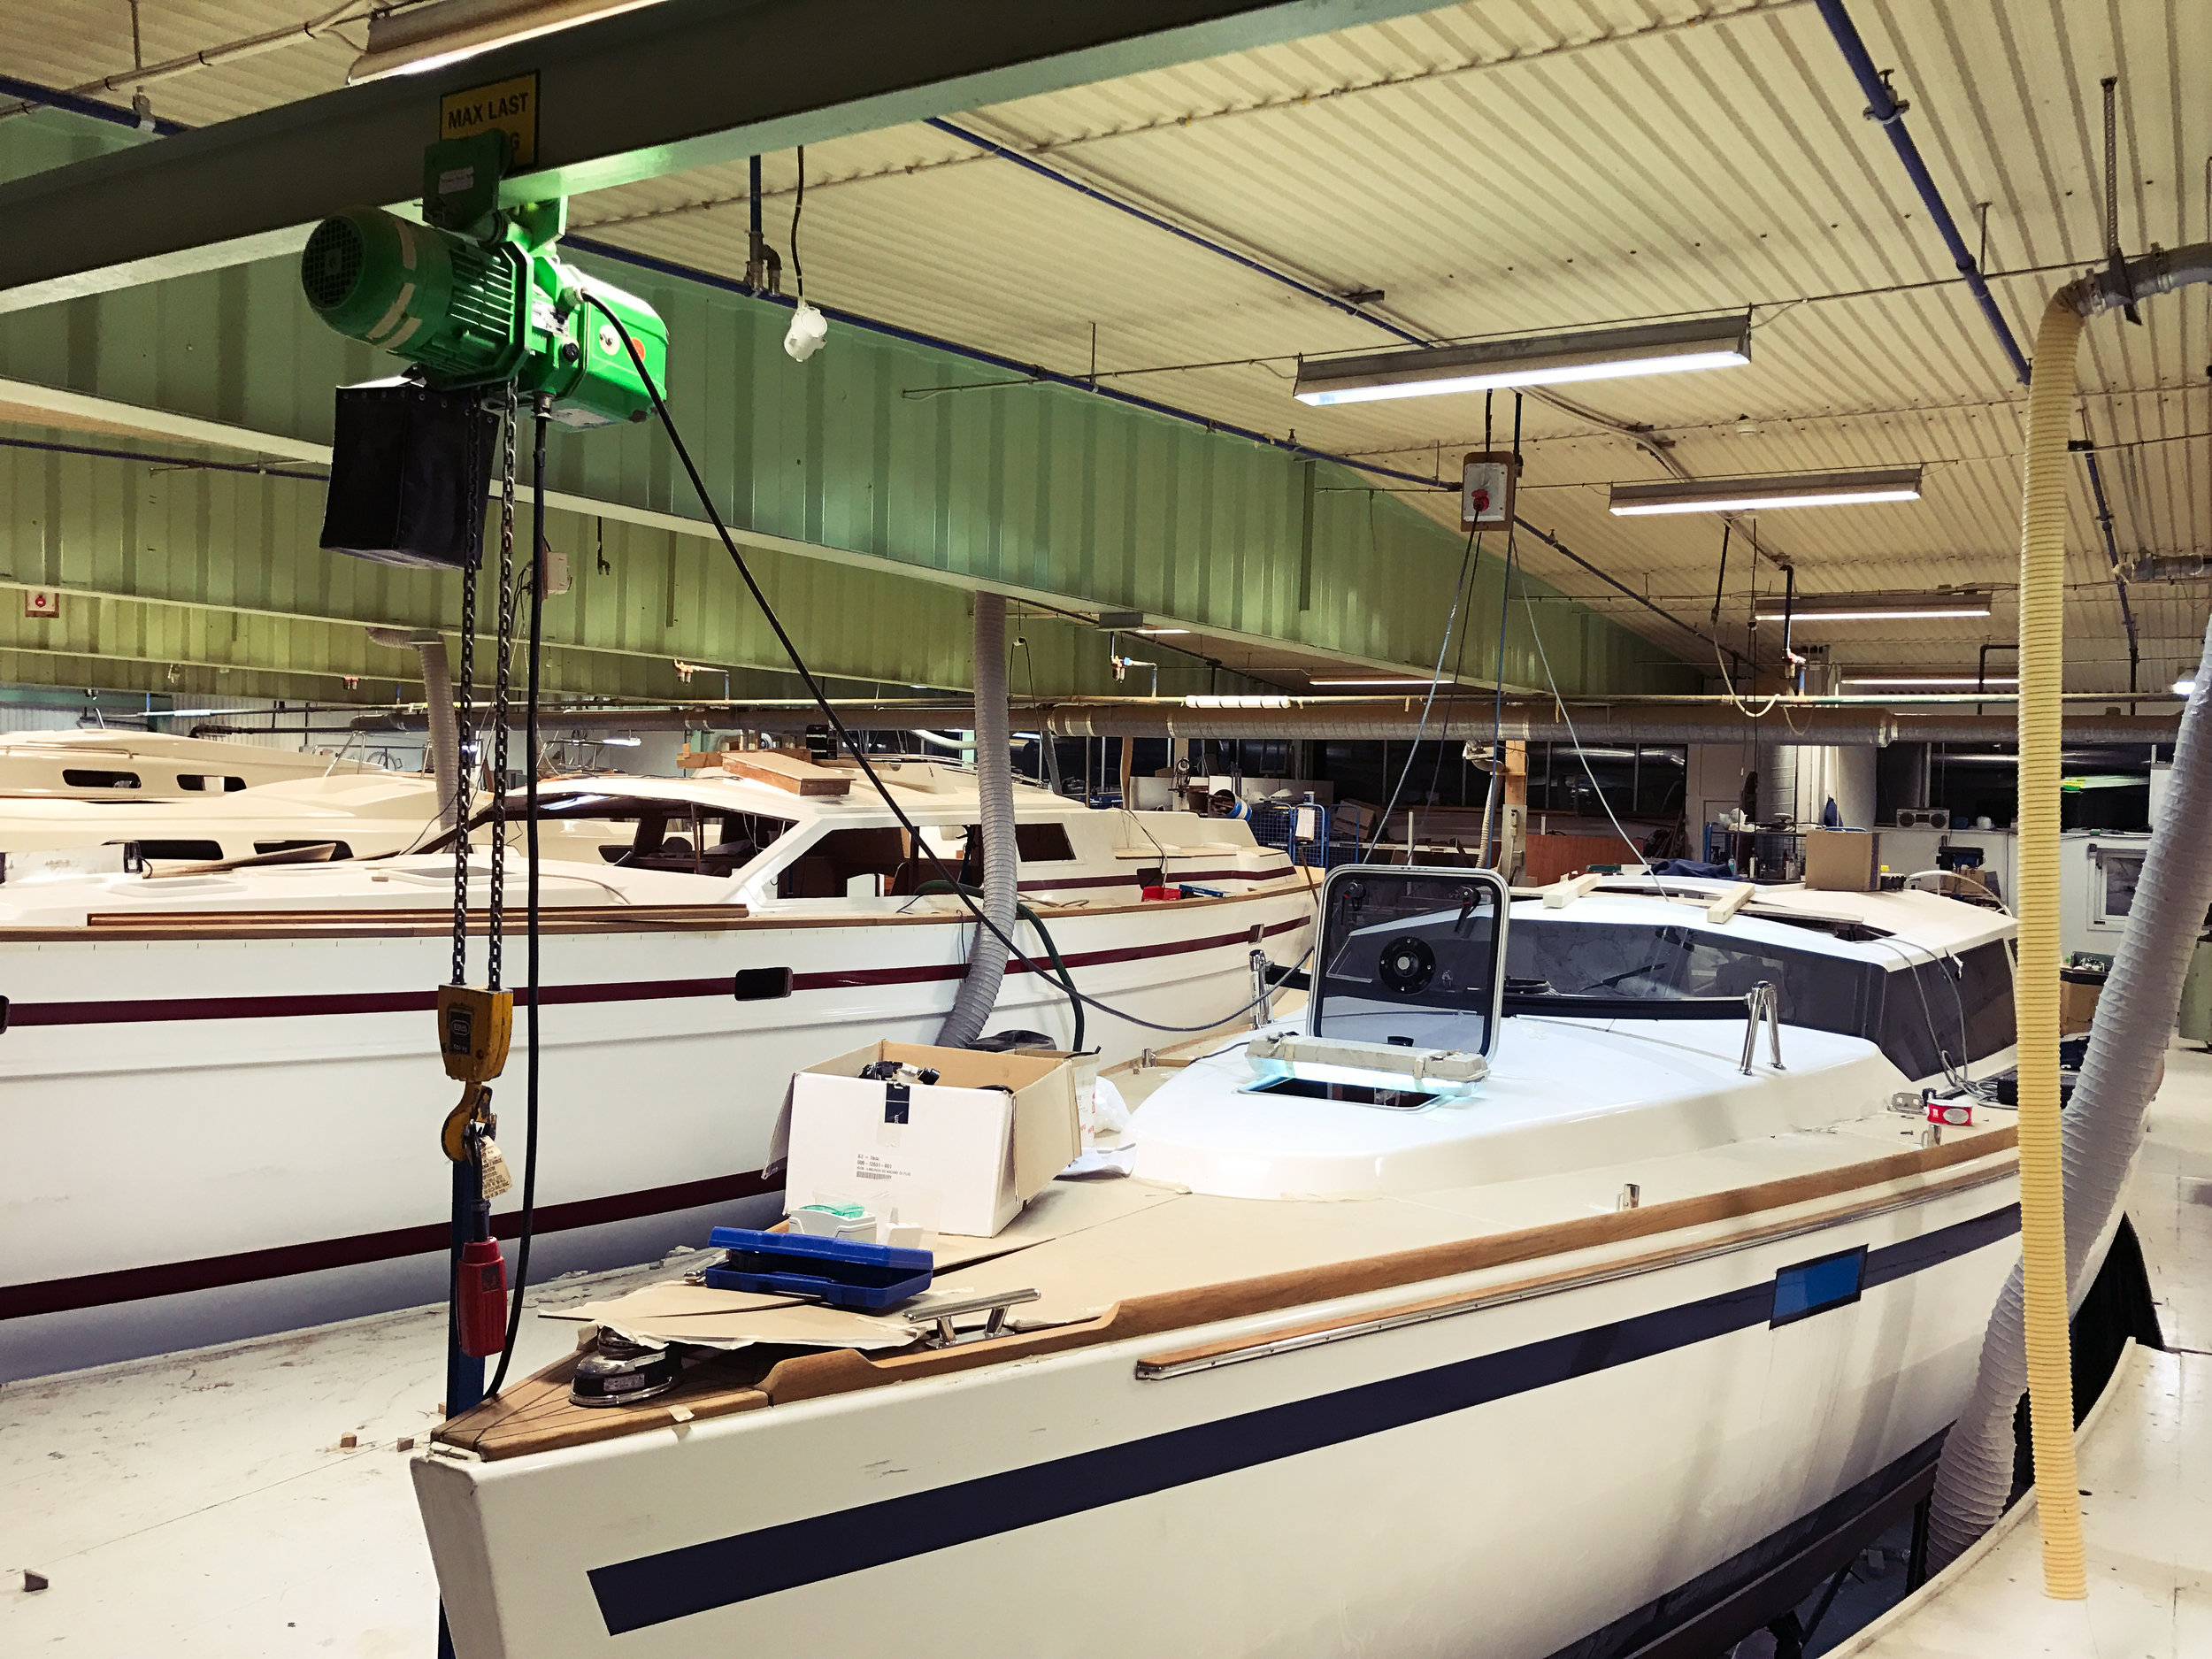 Deck Saloons in the production hall. Photo by Sweden Yachts Group.